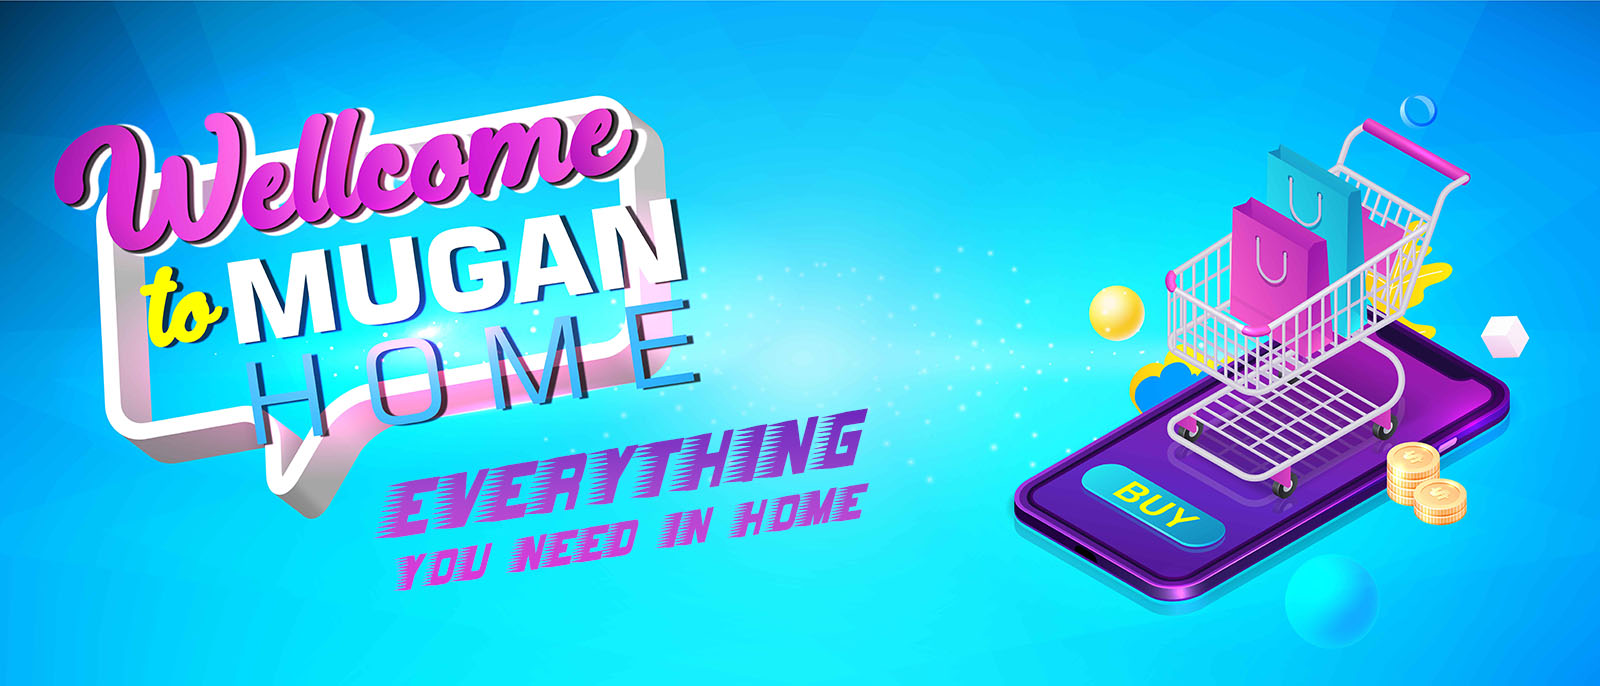 Everything you need in Home 1